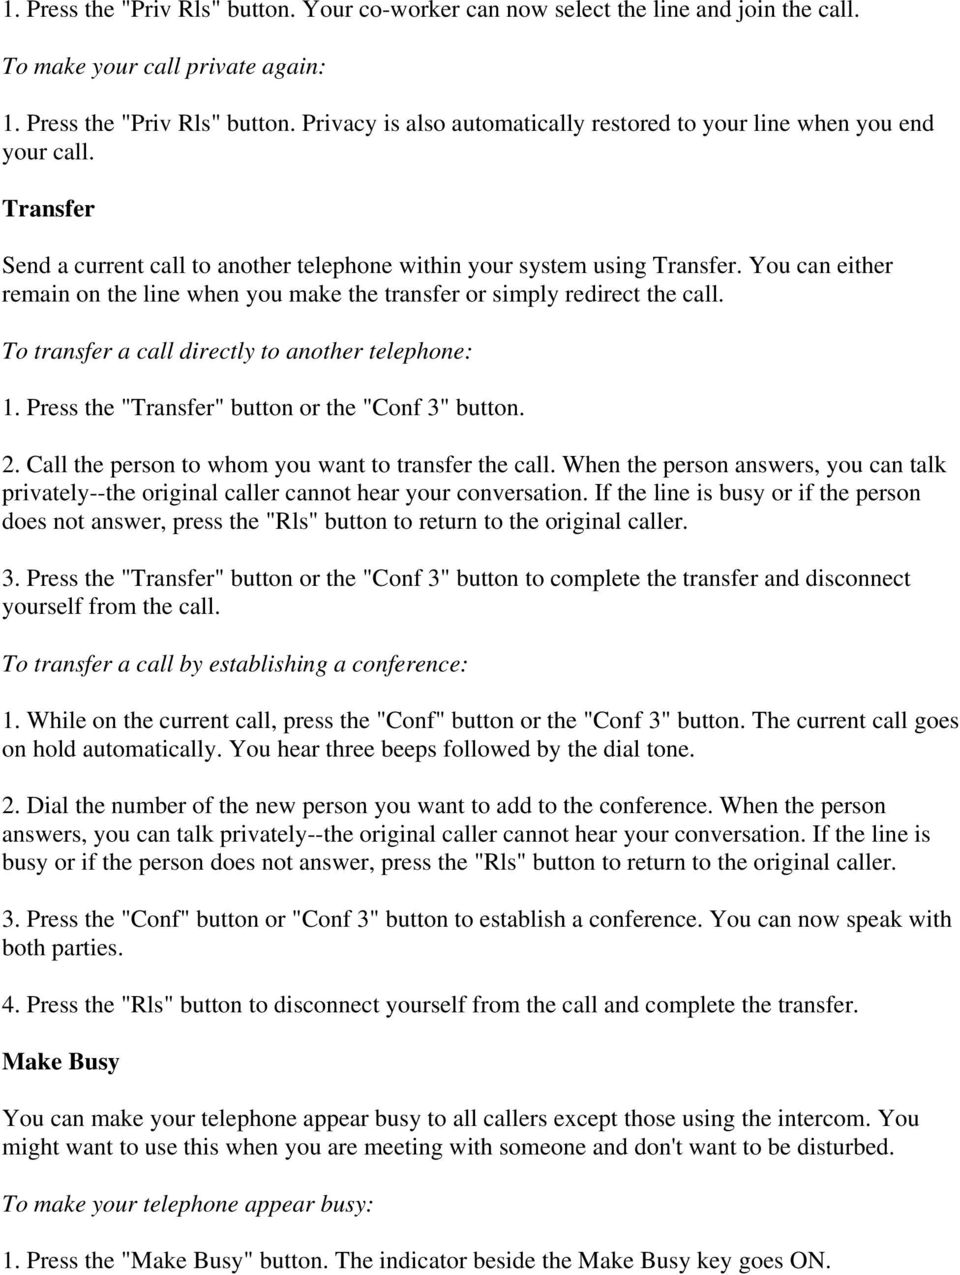 "To transfer a call directly to another telephone: 1. Press the ""Transfer"" button or the ""Conf 3"" button. 2. Call the person to whom you want to transfer the call."